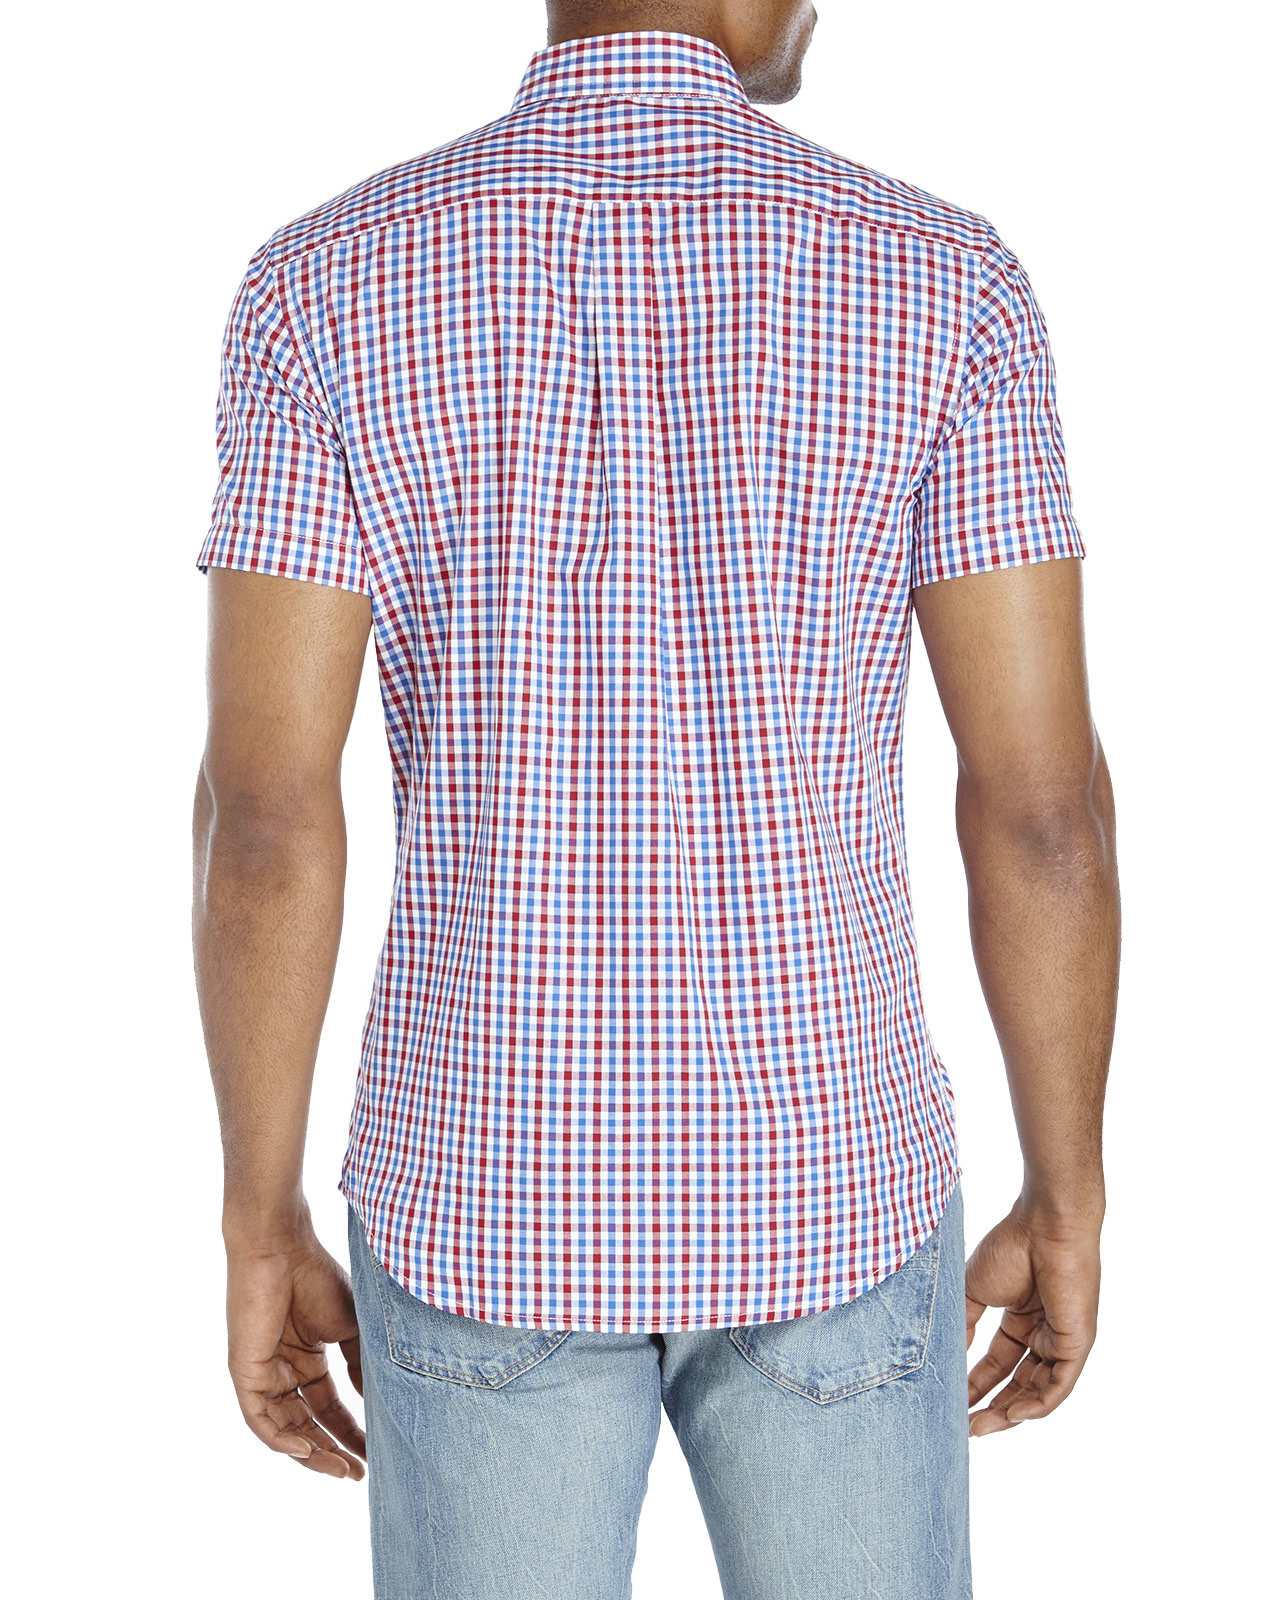 Lyst Dockers Blue Red Gingham Button Down Shirt In